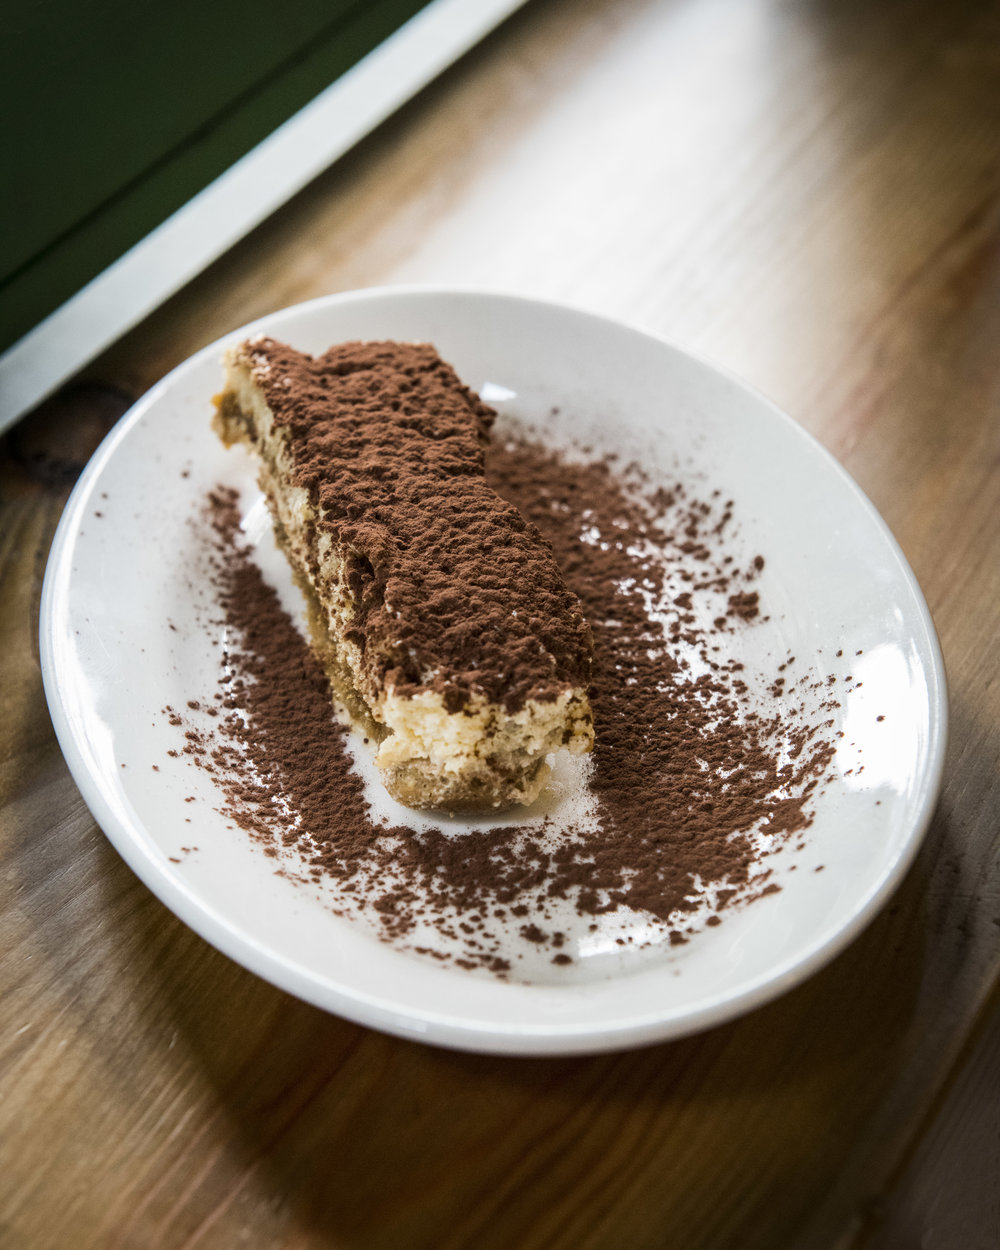 Tiramisu at Bodega Santo Porcello, Barcelona